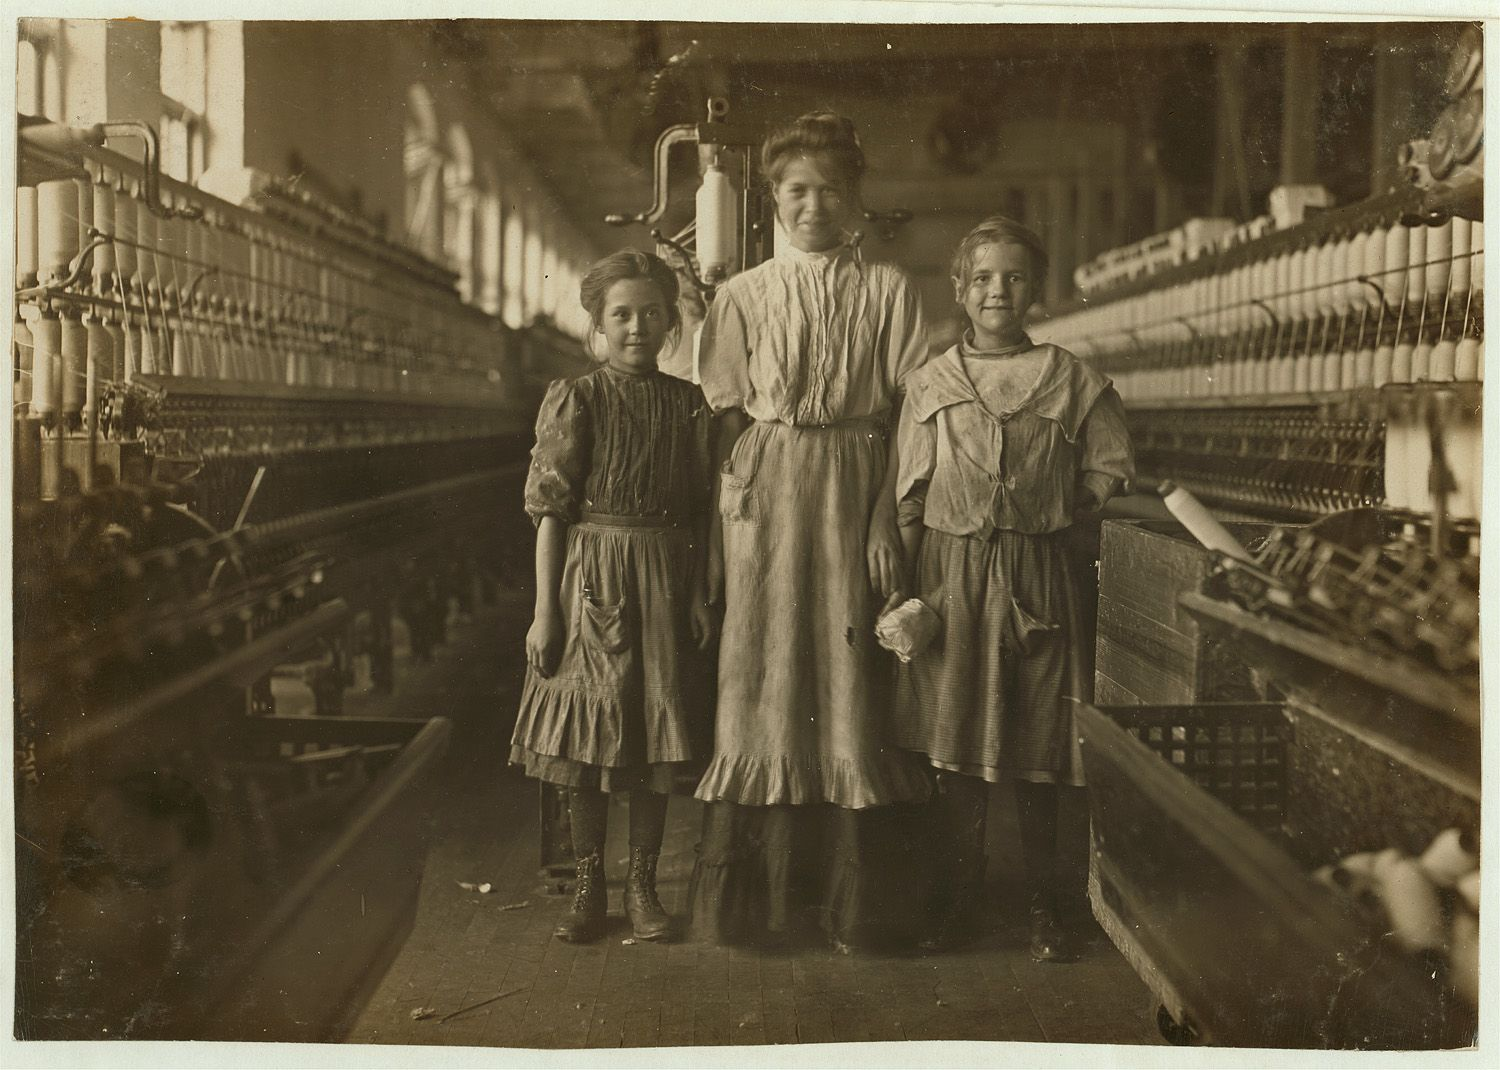 Lewis Hines Photography Child Labor Lewis Hine Lewis